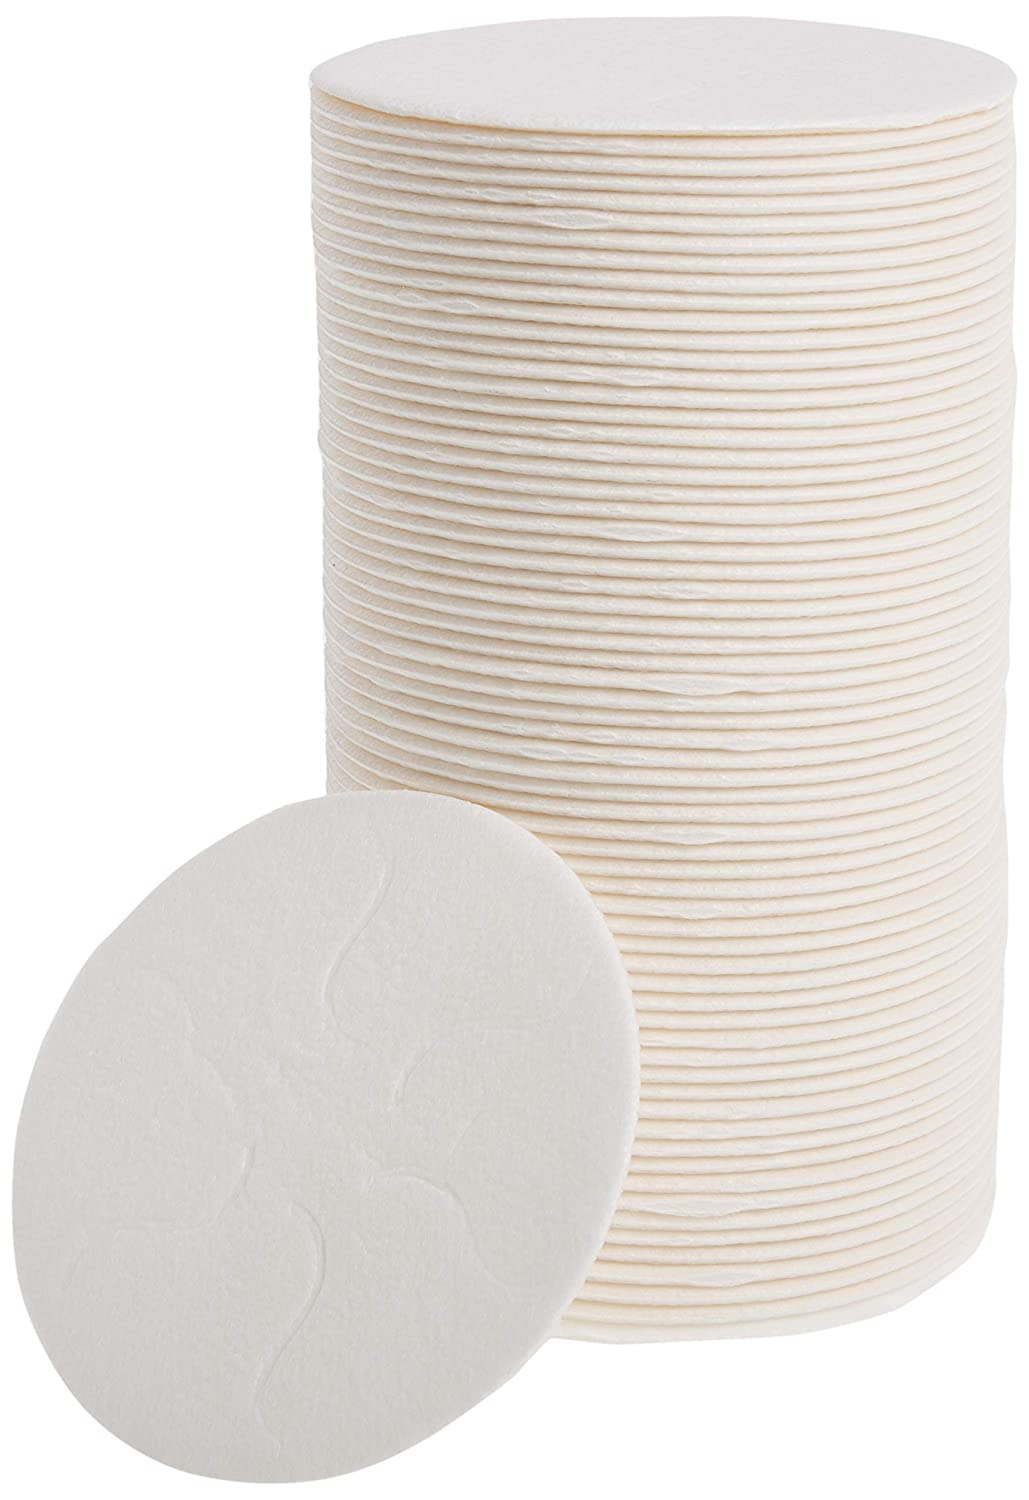 NUK Ultra Thin Quality inspection Disposable Ranking TOP4 66ct Nursing Pads